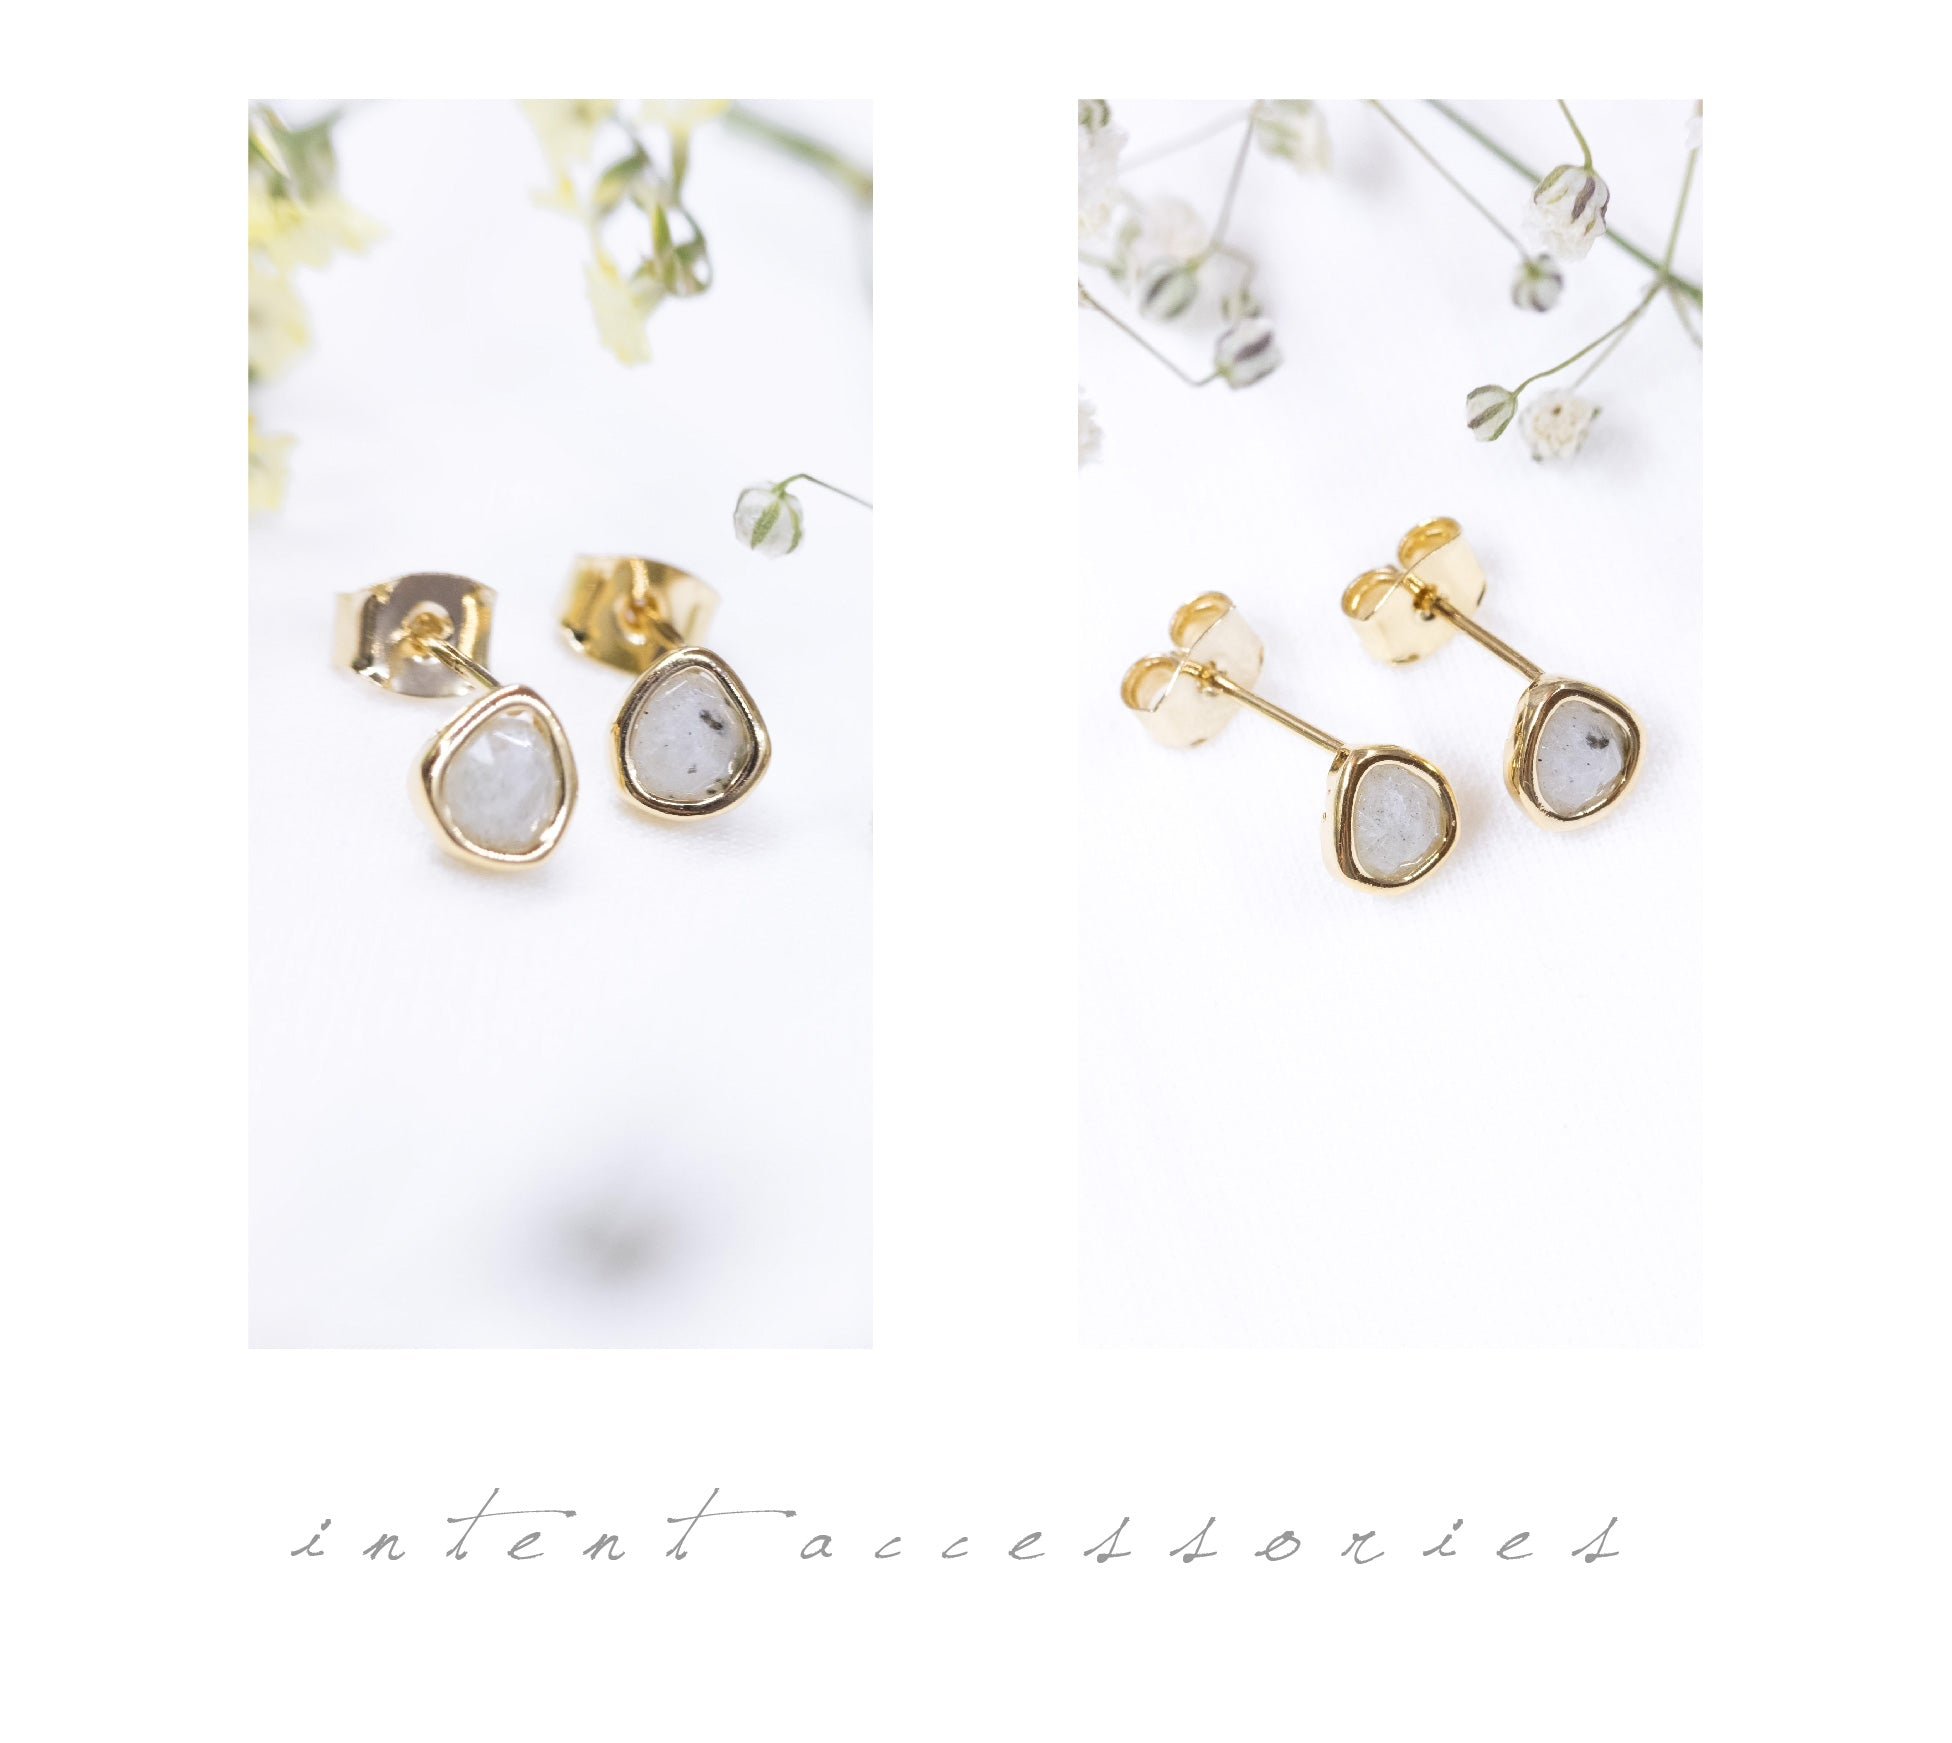 Iris, earrings / ER8234